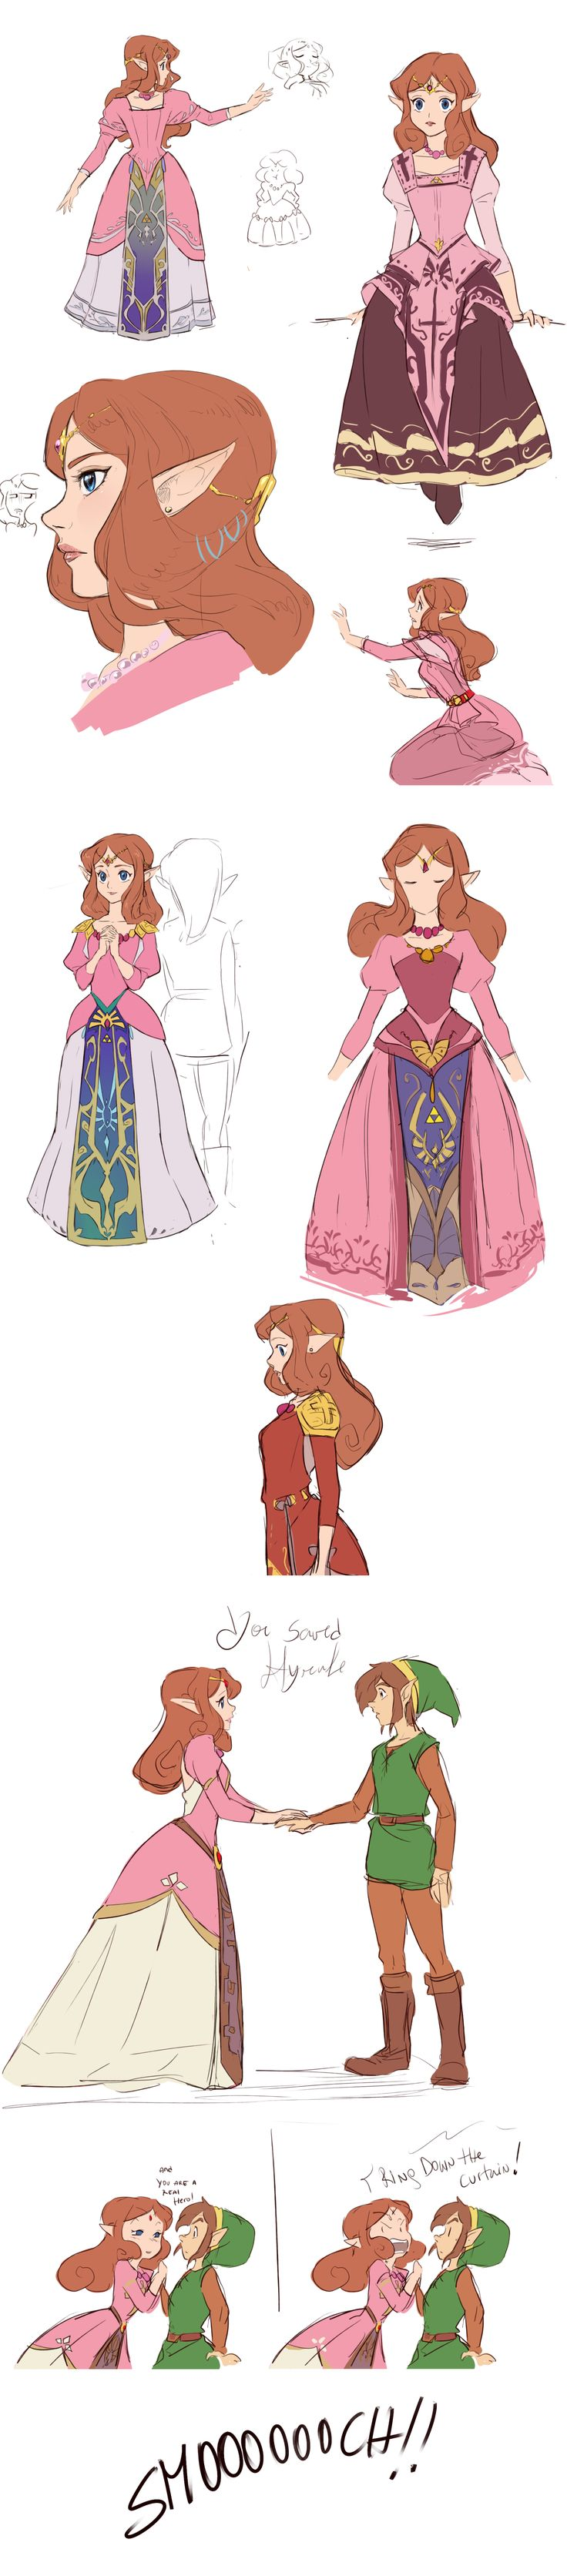 I'm really tired of the color pink. This is like a redesign of the first Zelda (? I want to believe that it wasn't a lost of time but.. oh my, the pink color just saturated myself, I can't say more than this haha ( but it was fun)